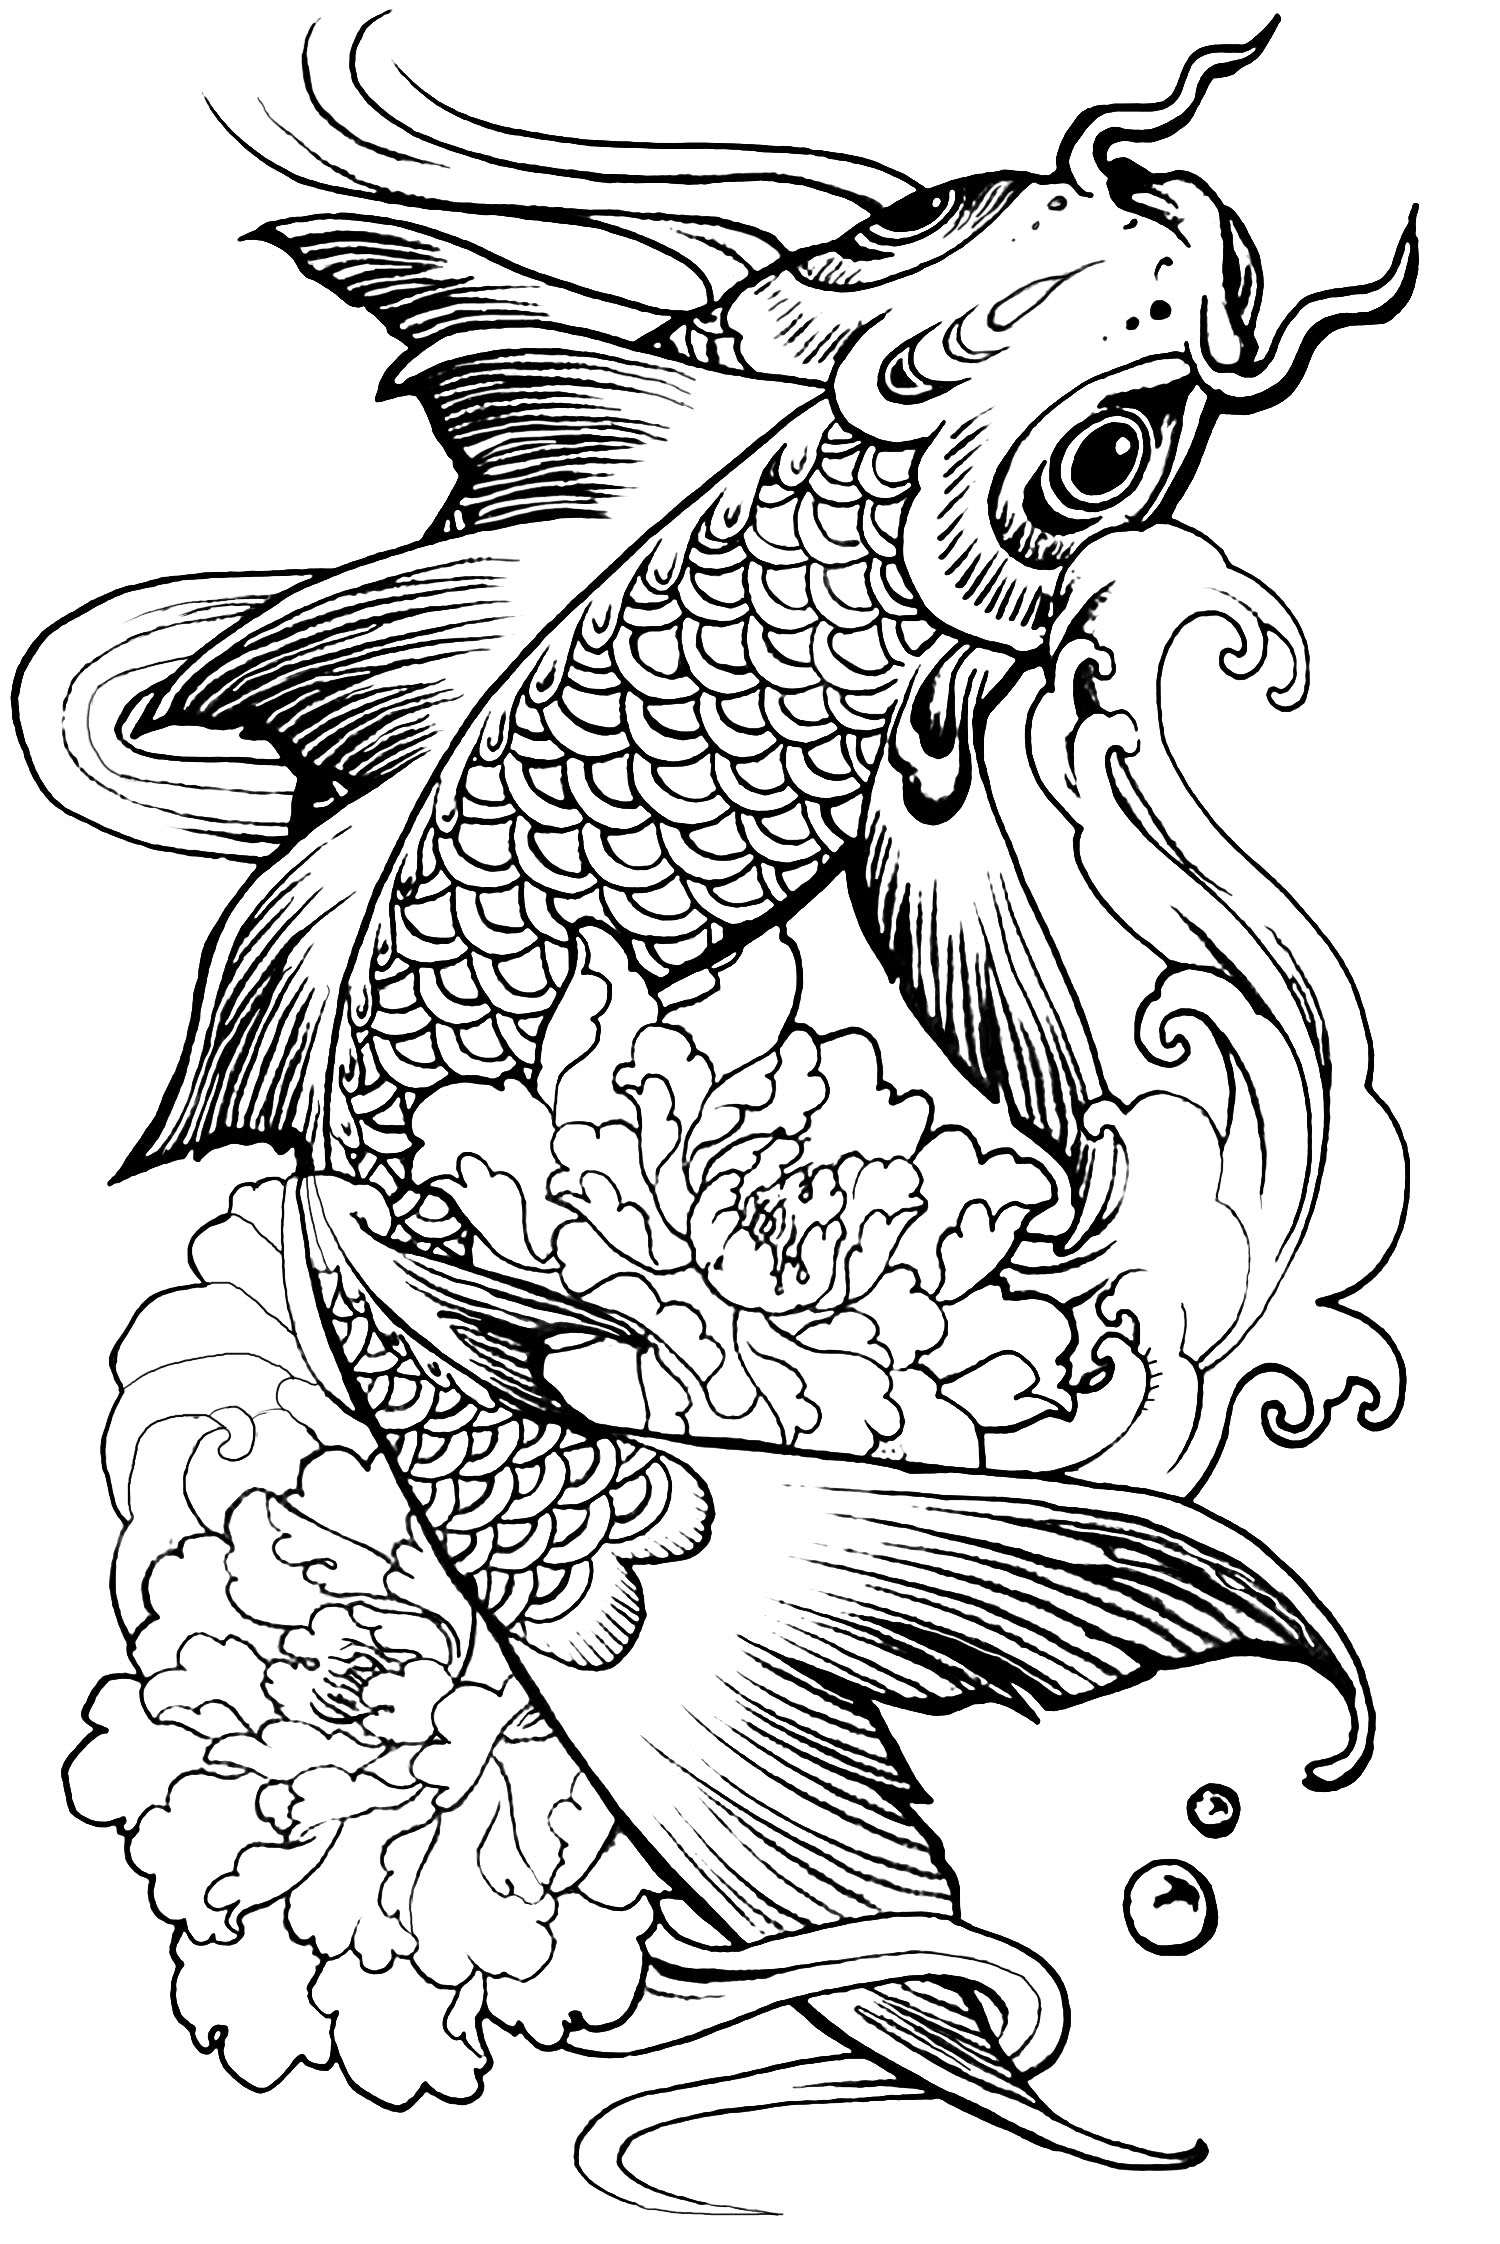 Coloring обои Colouring Page Hd обои And Background фото